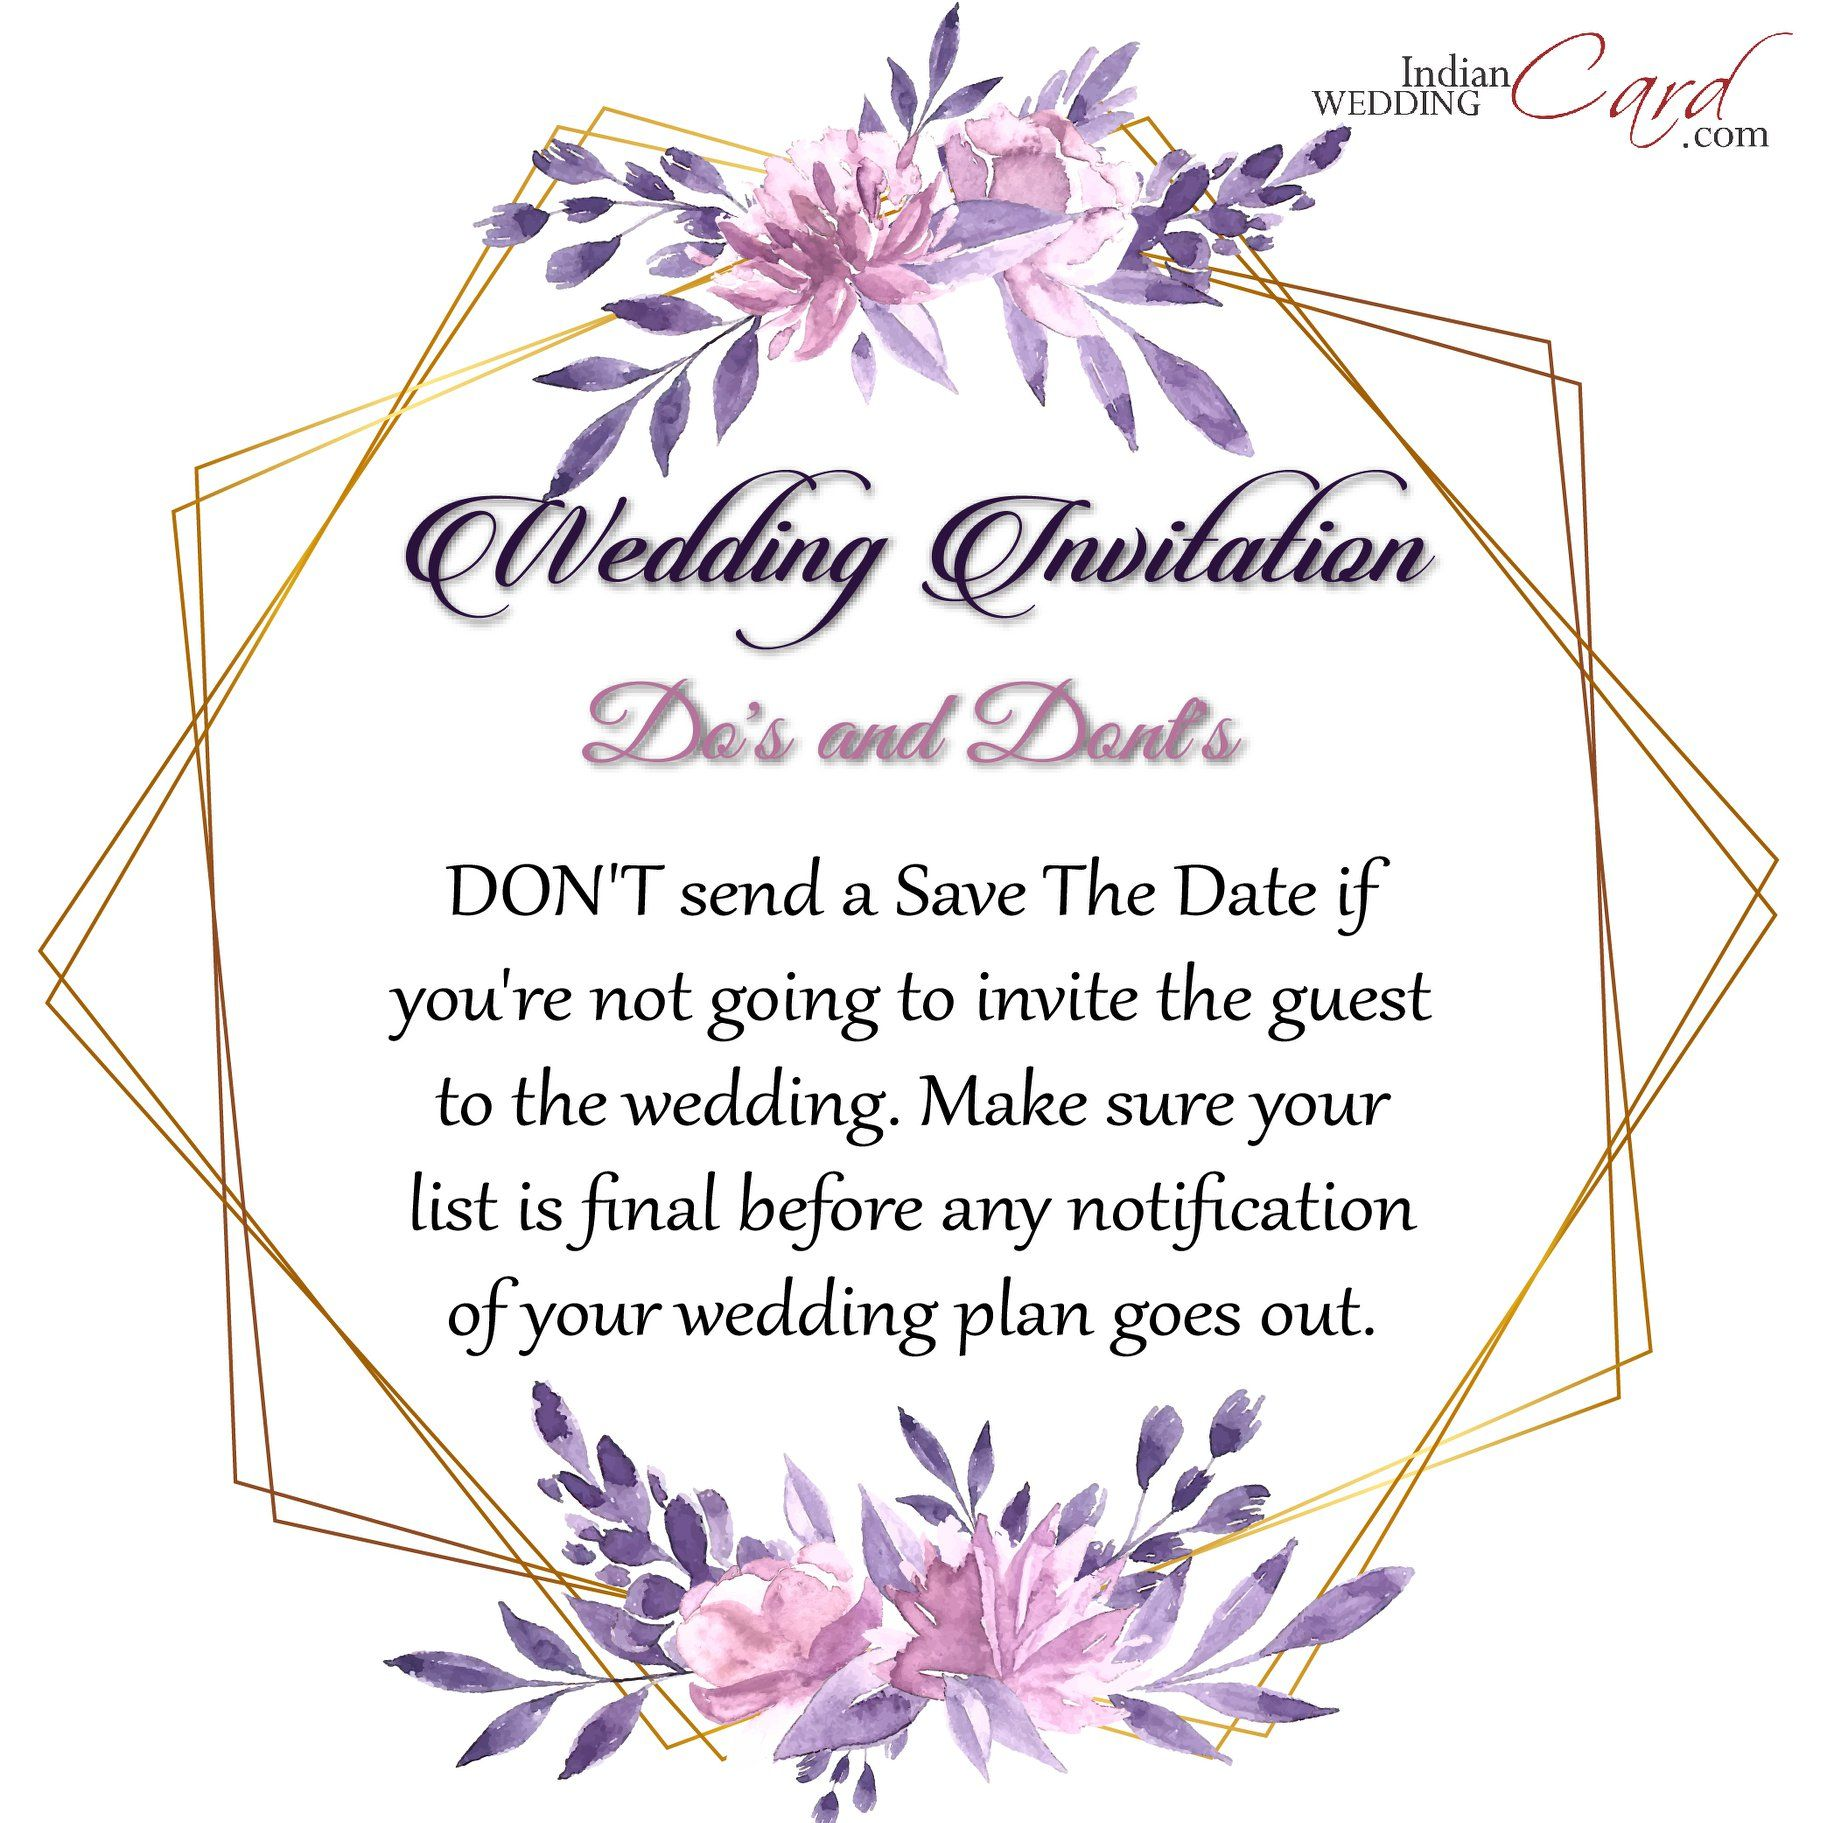 Finalising Your Wedding Guest List Is Very Important To Do Before Your Invitations Go Out Indi Wedding Cards Scroll Wedding Invitations Indian Wedding Cards